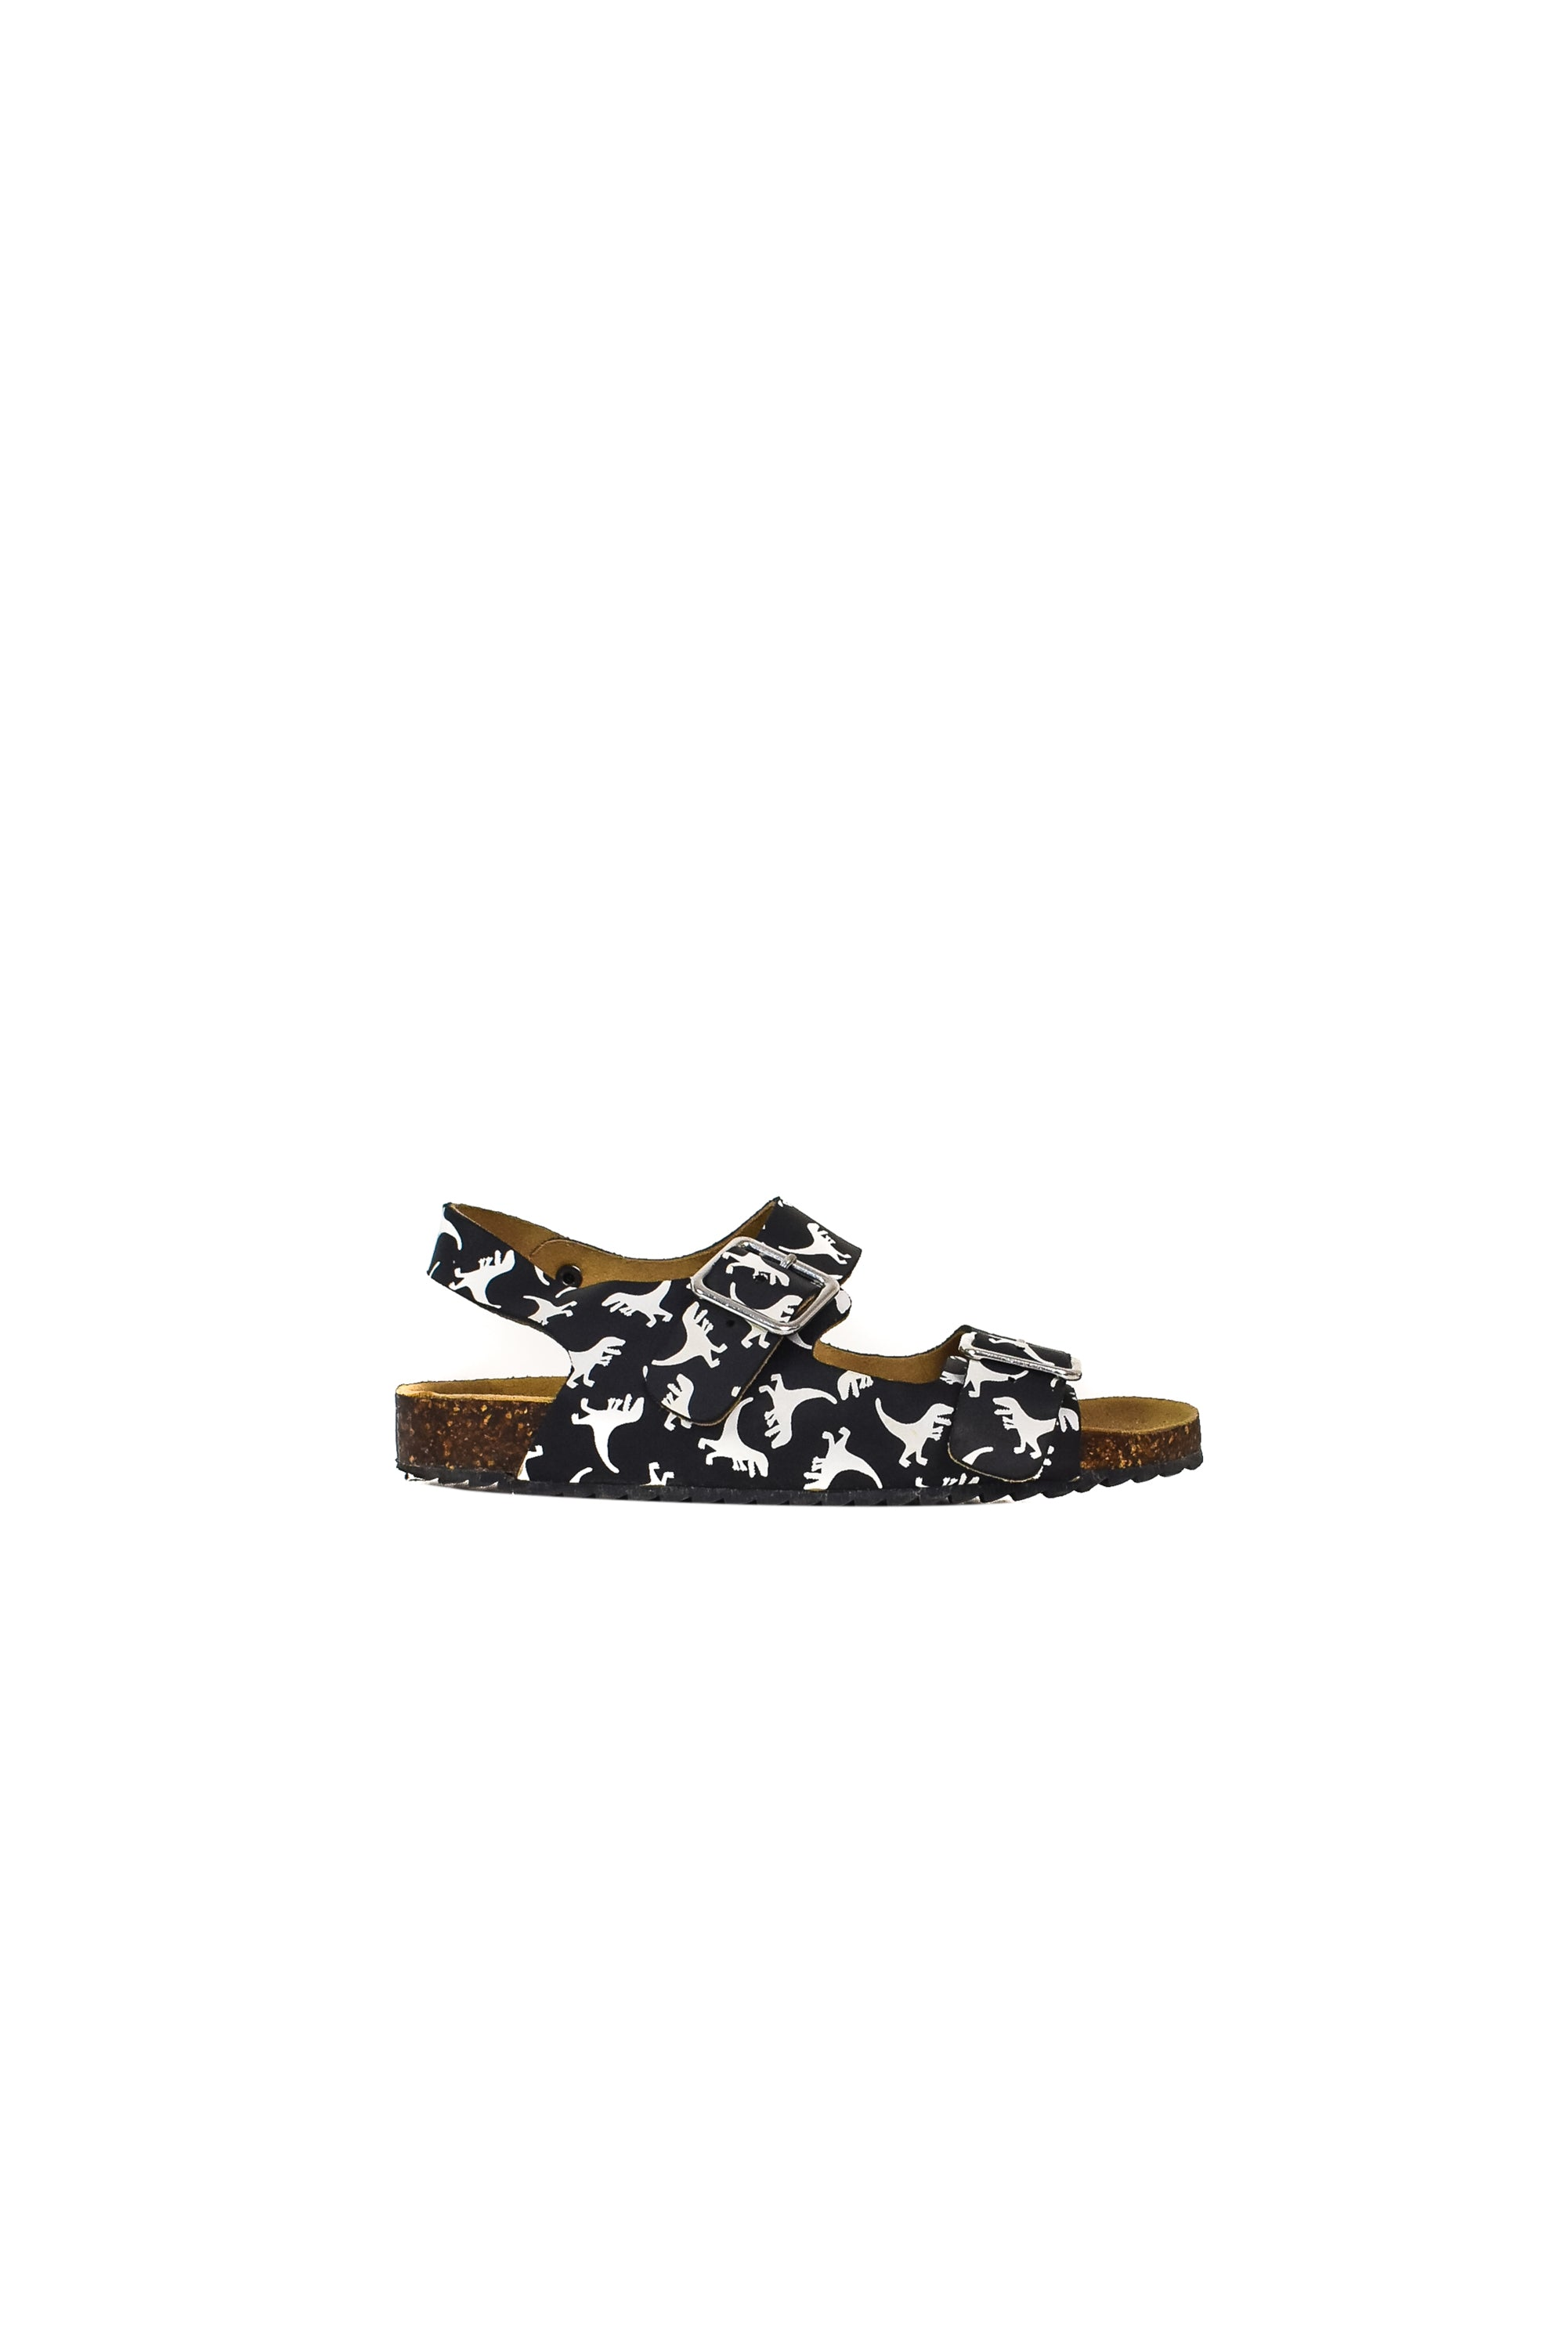 10034872 Seed Kids~Sandals 5-6T (EU 29) at Retykle